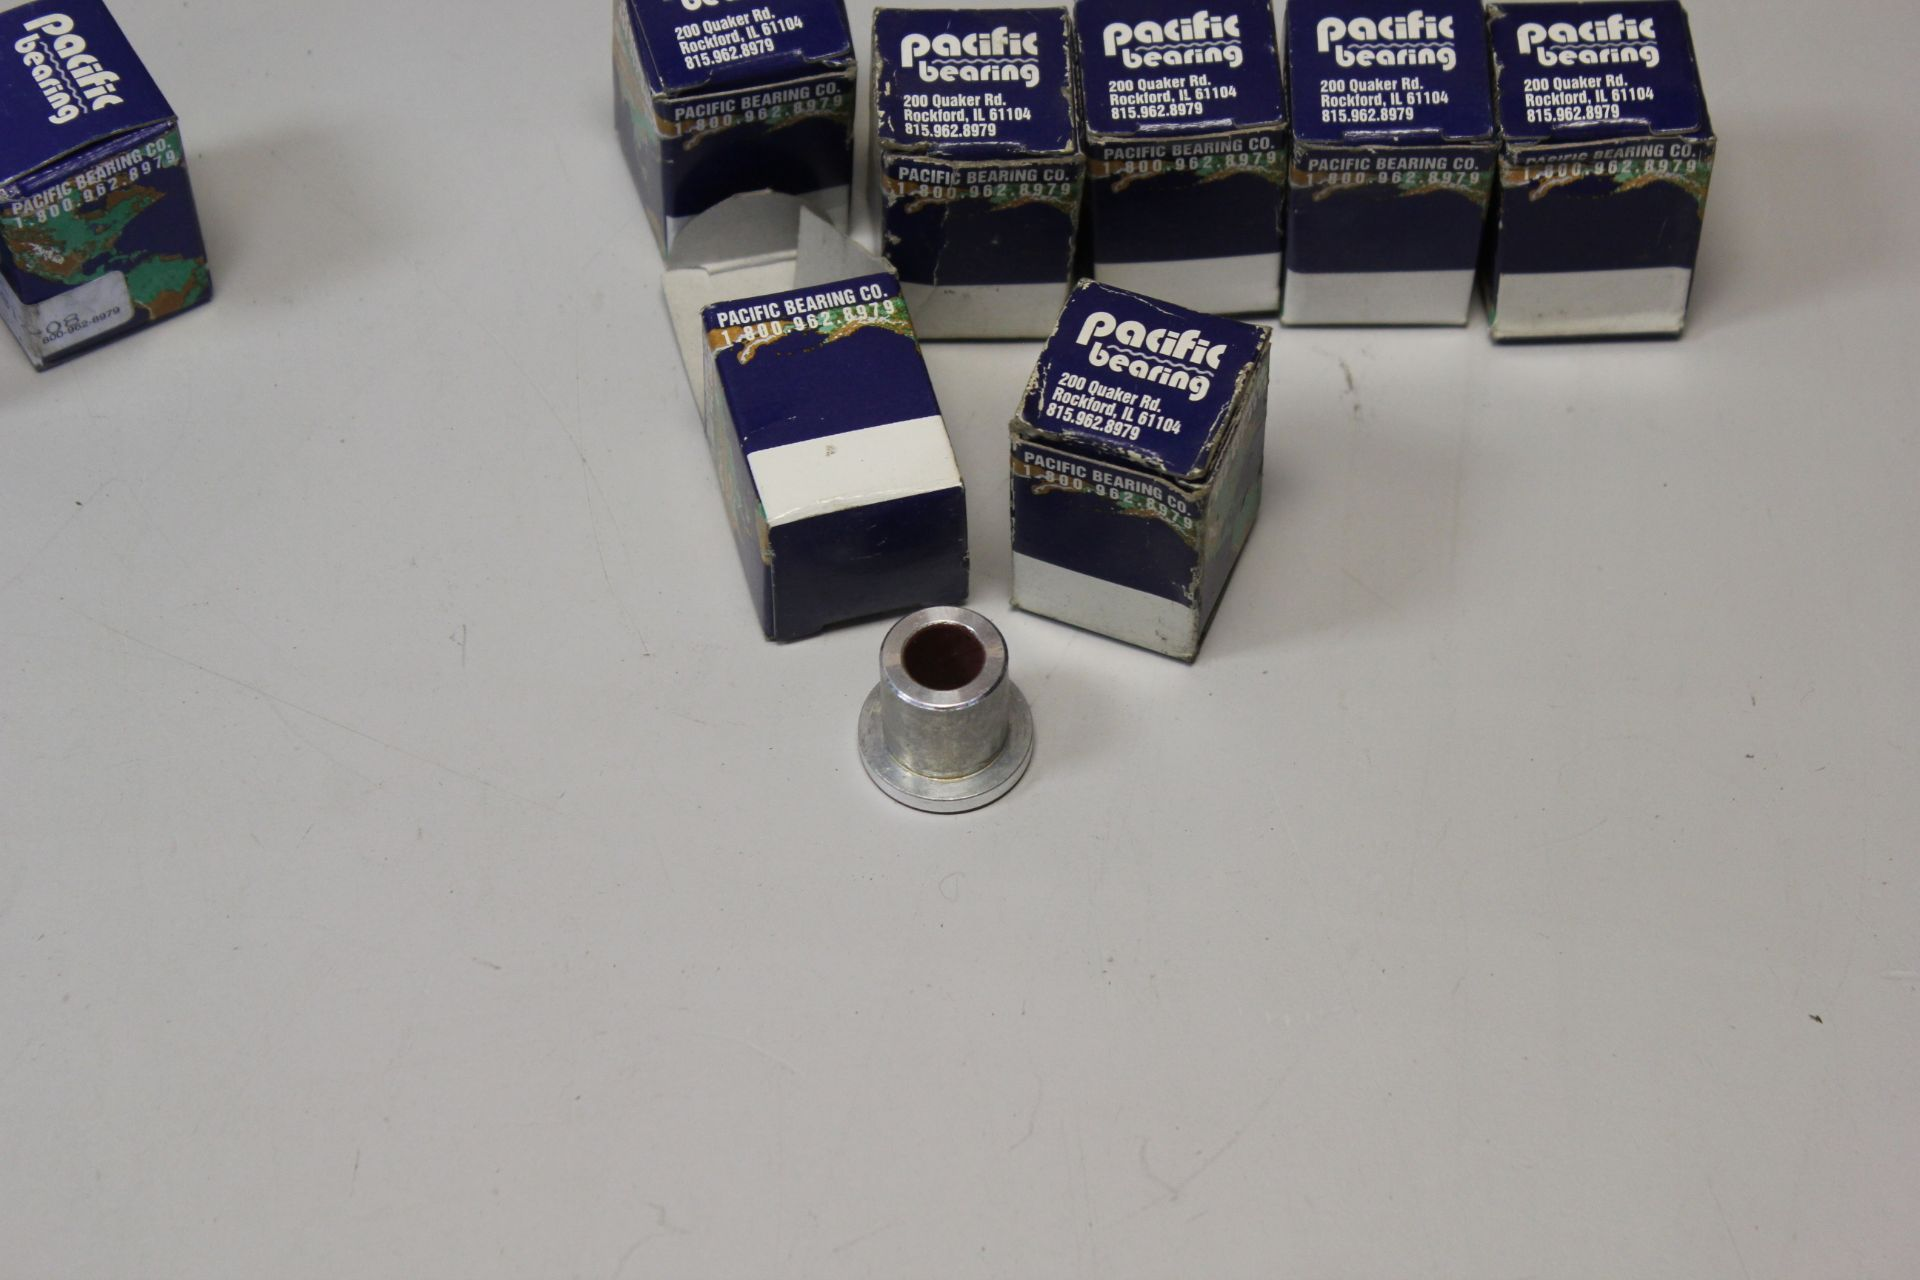 LOT OF NEW PACIFIC ROLLER BEARINGS - Image 8 of 8